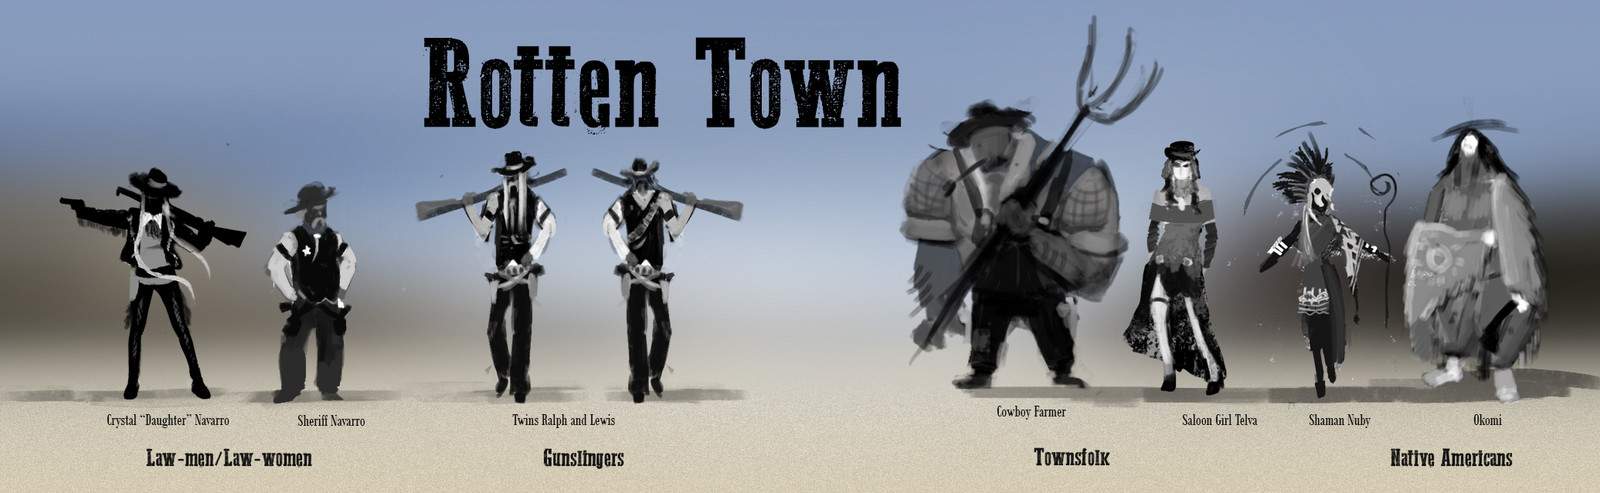 Rotten Town citizens line up